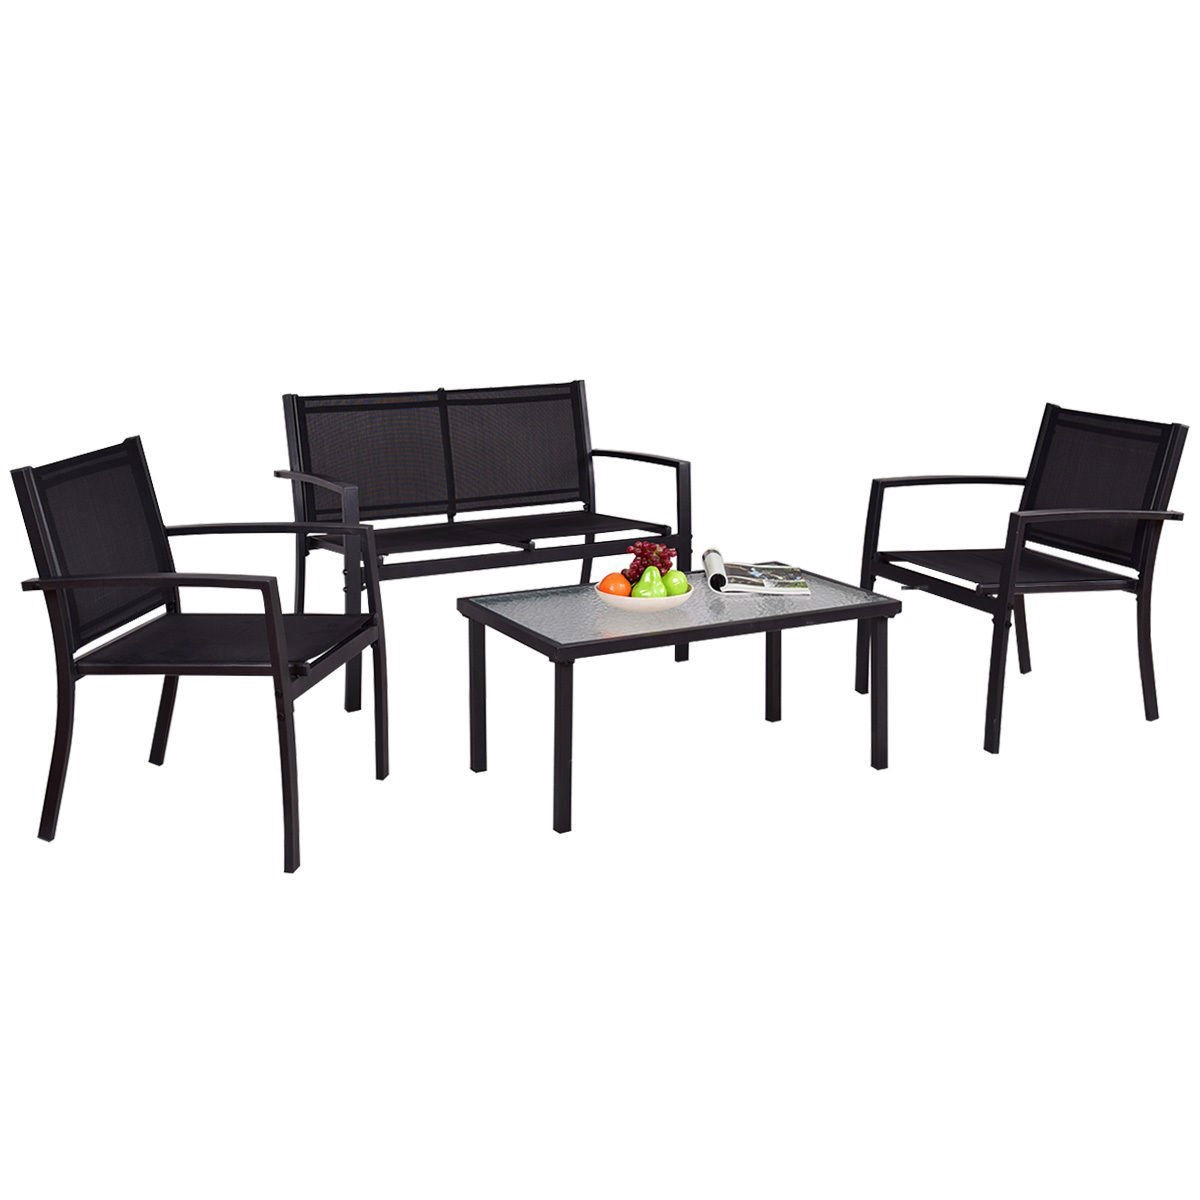 outdoor sling chairs. Modern 4-Piece Outdoor Patio Furniture Set With Sling Chairs And Coffee Table A